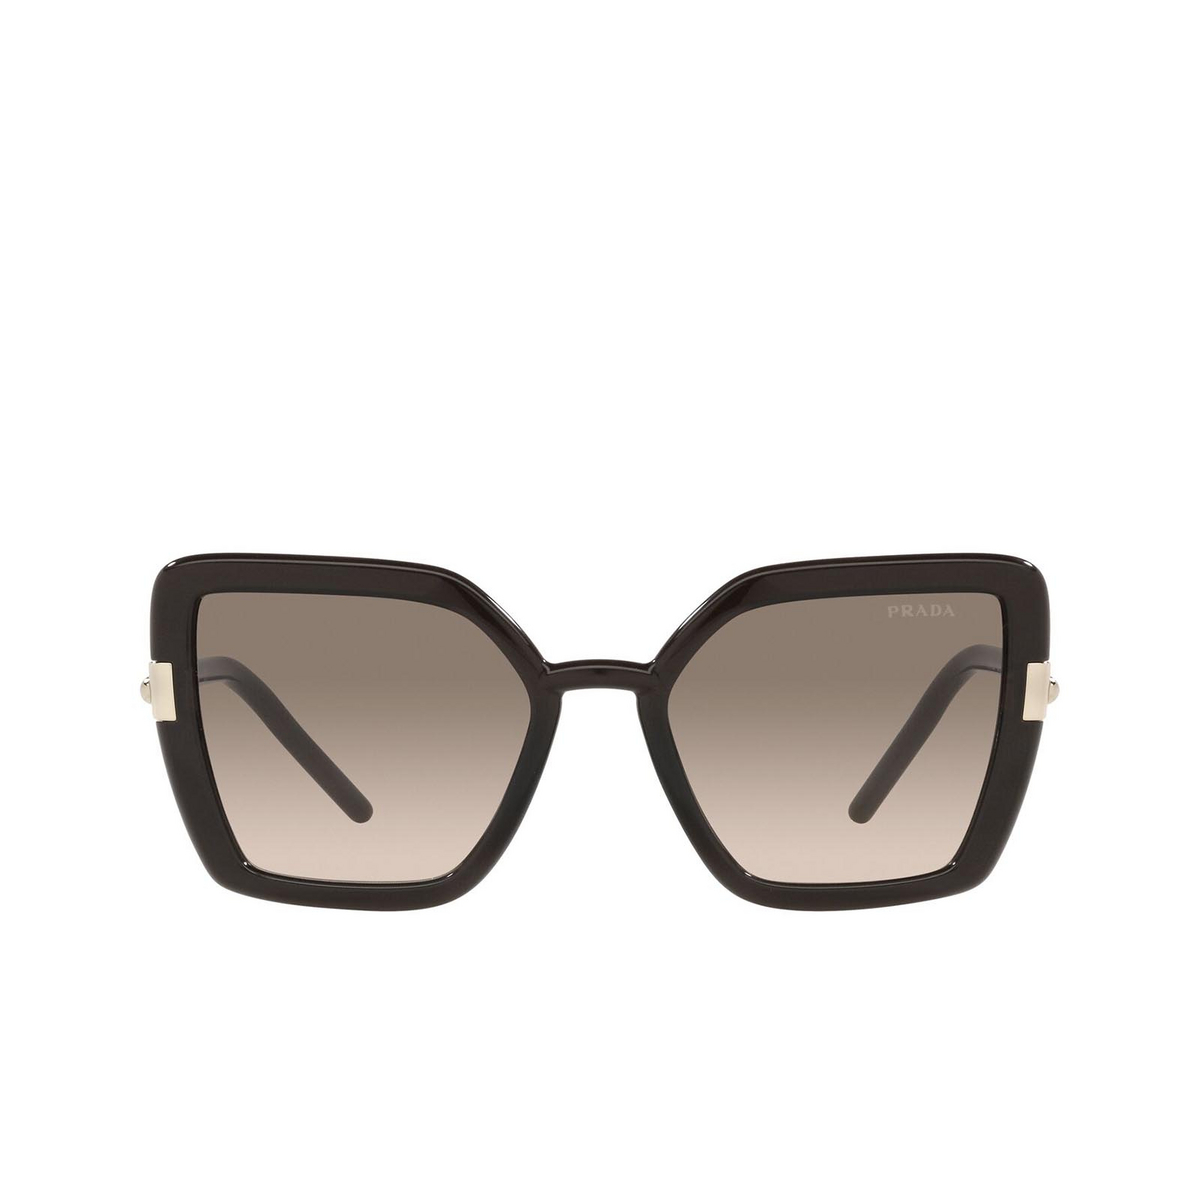 Prada® Butterfly Sunglasses: PR 09WS color Crystal Dark Brown 05M3D0 - front view.